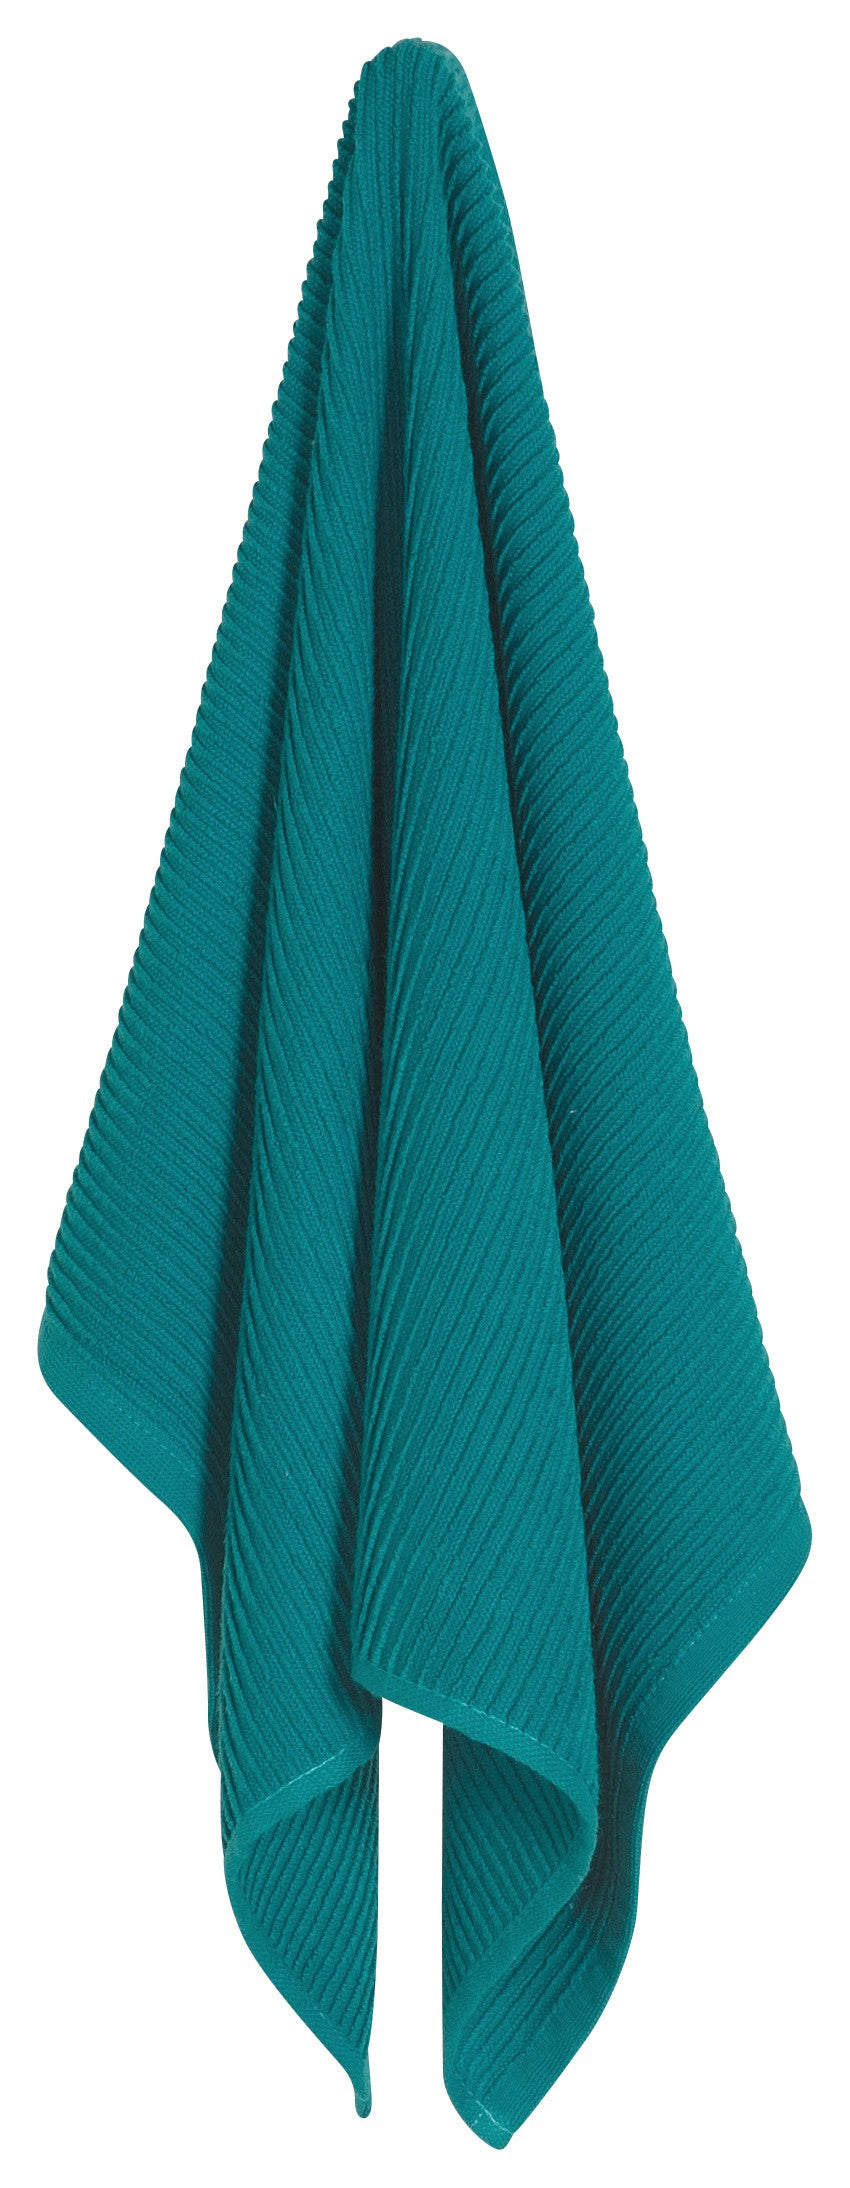 Ripple Dishtowel - Peacock